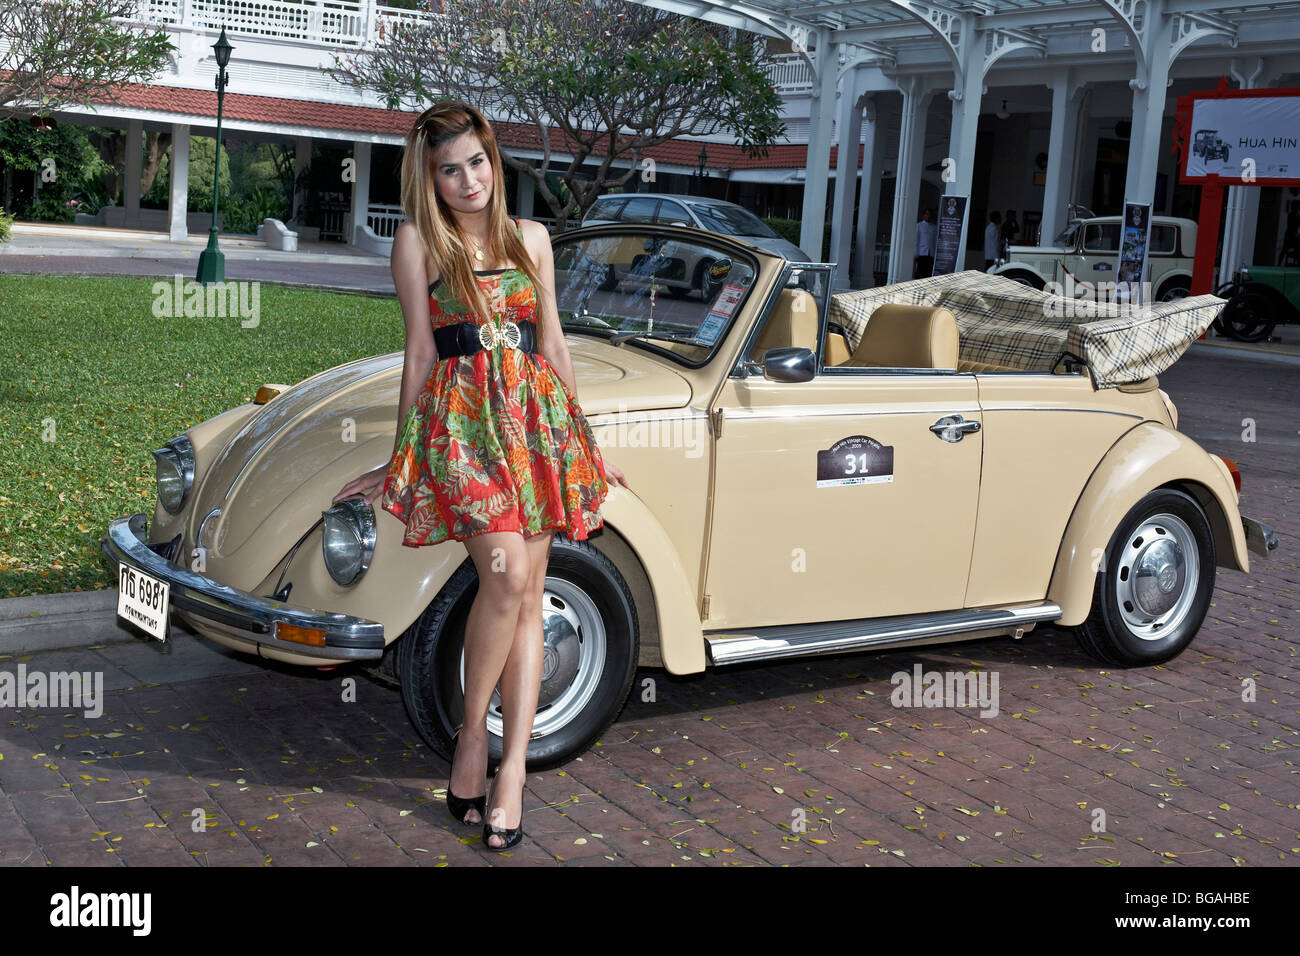 Female model posing with a classic cream coloured Volkswagen Beetle convertible motor car. Thailand S. E. Asia - Stock Image